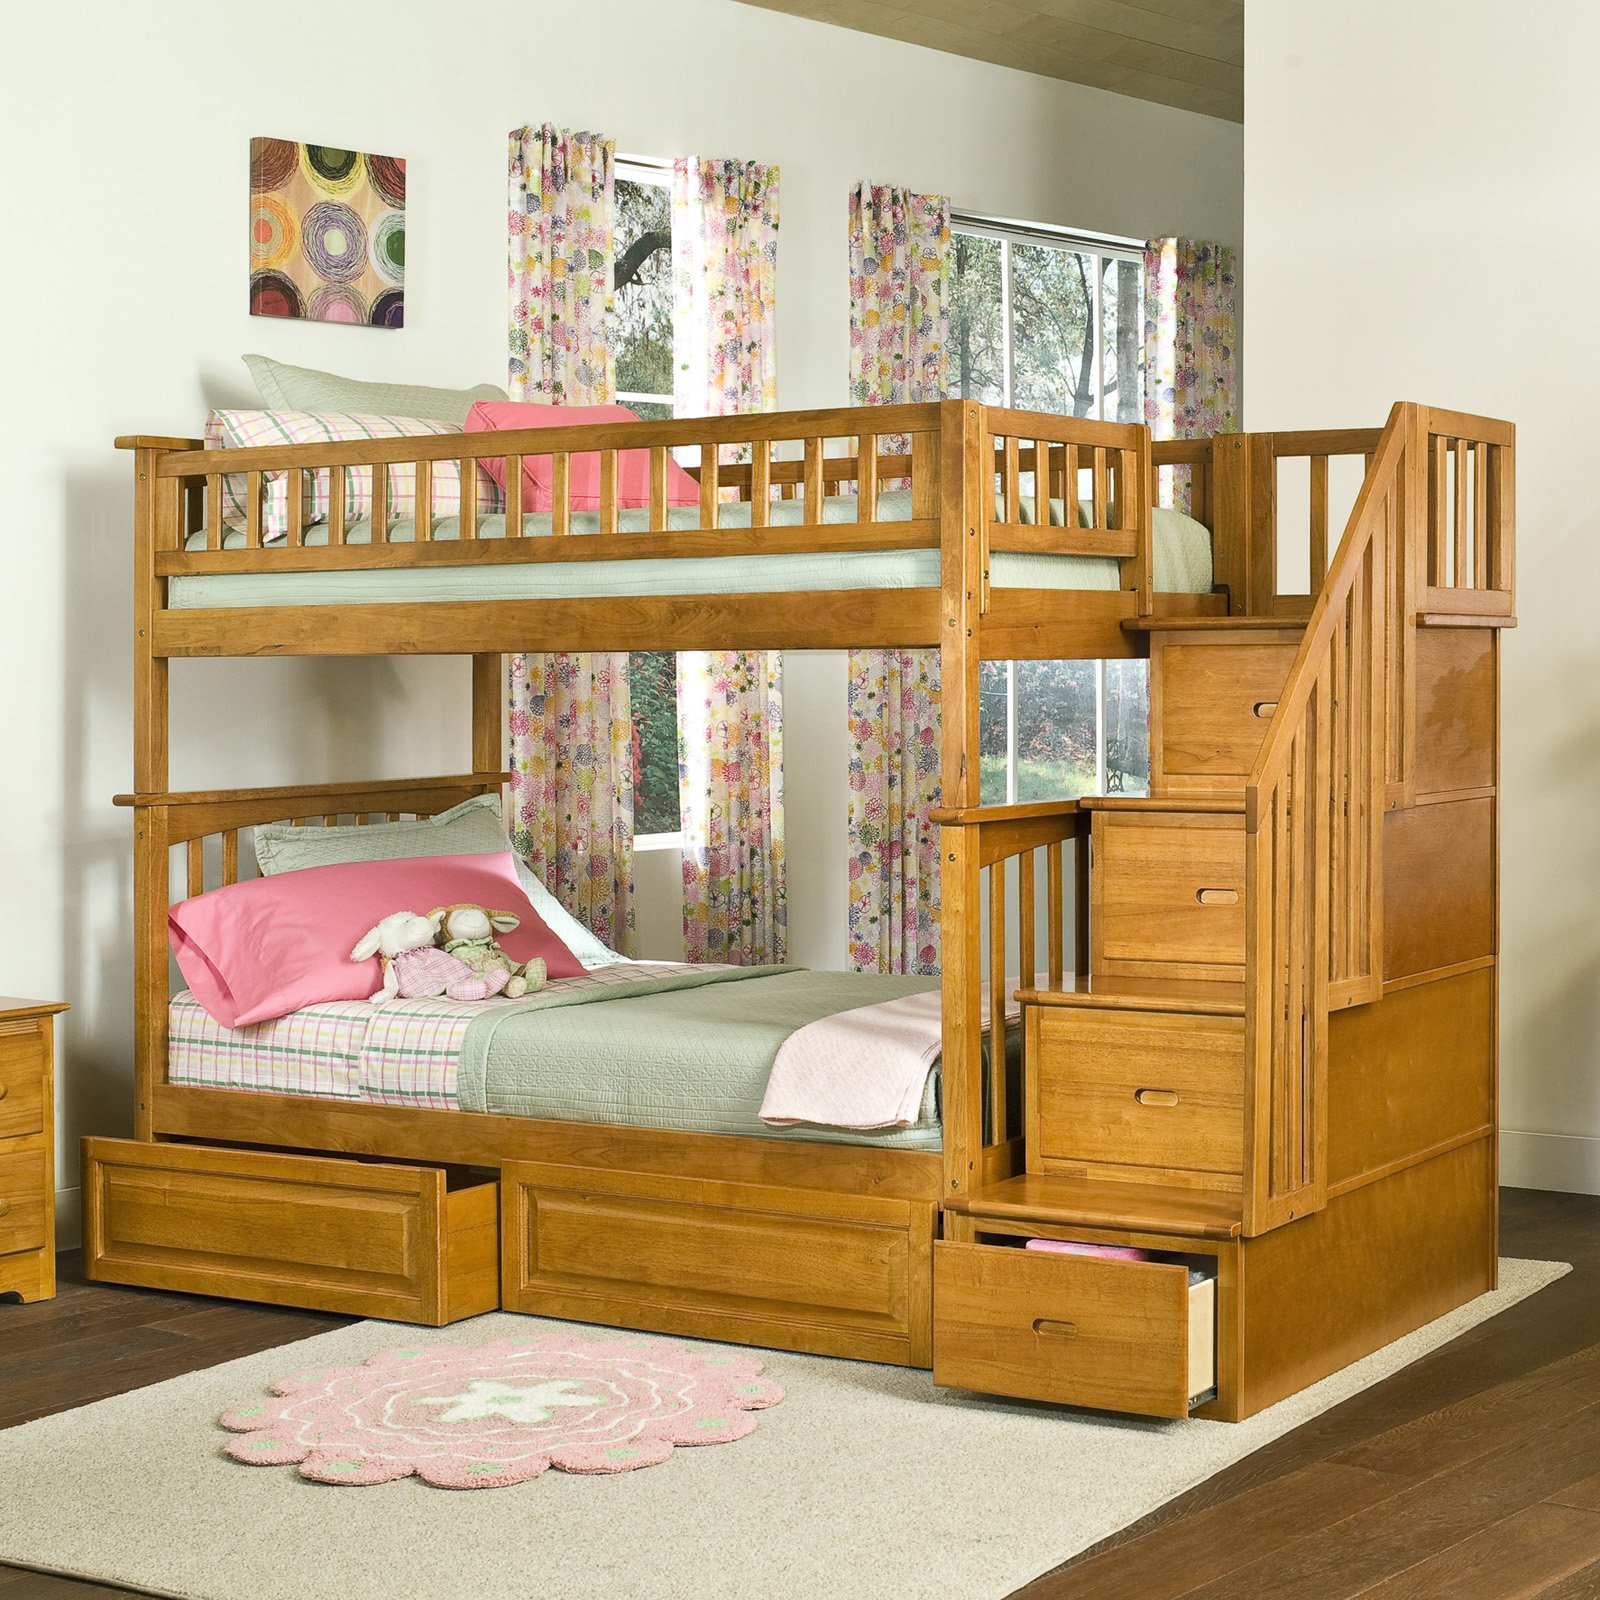 Bunk Bed Plans With Stairs Bunk Beds Unique And